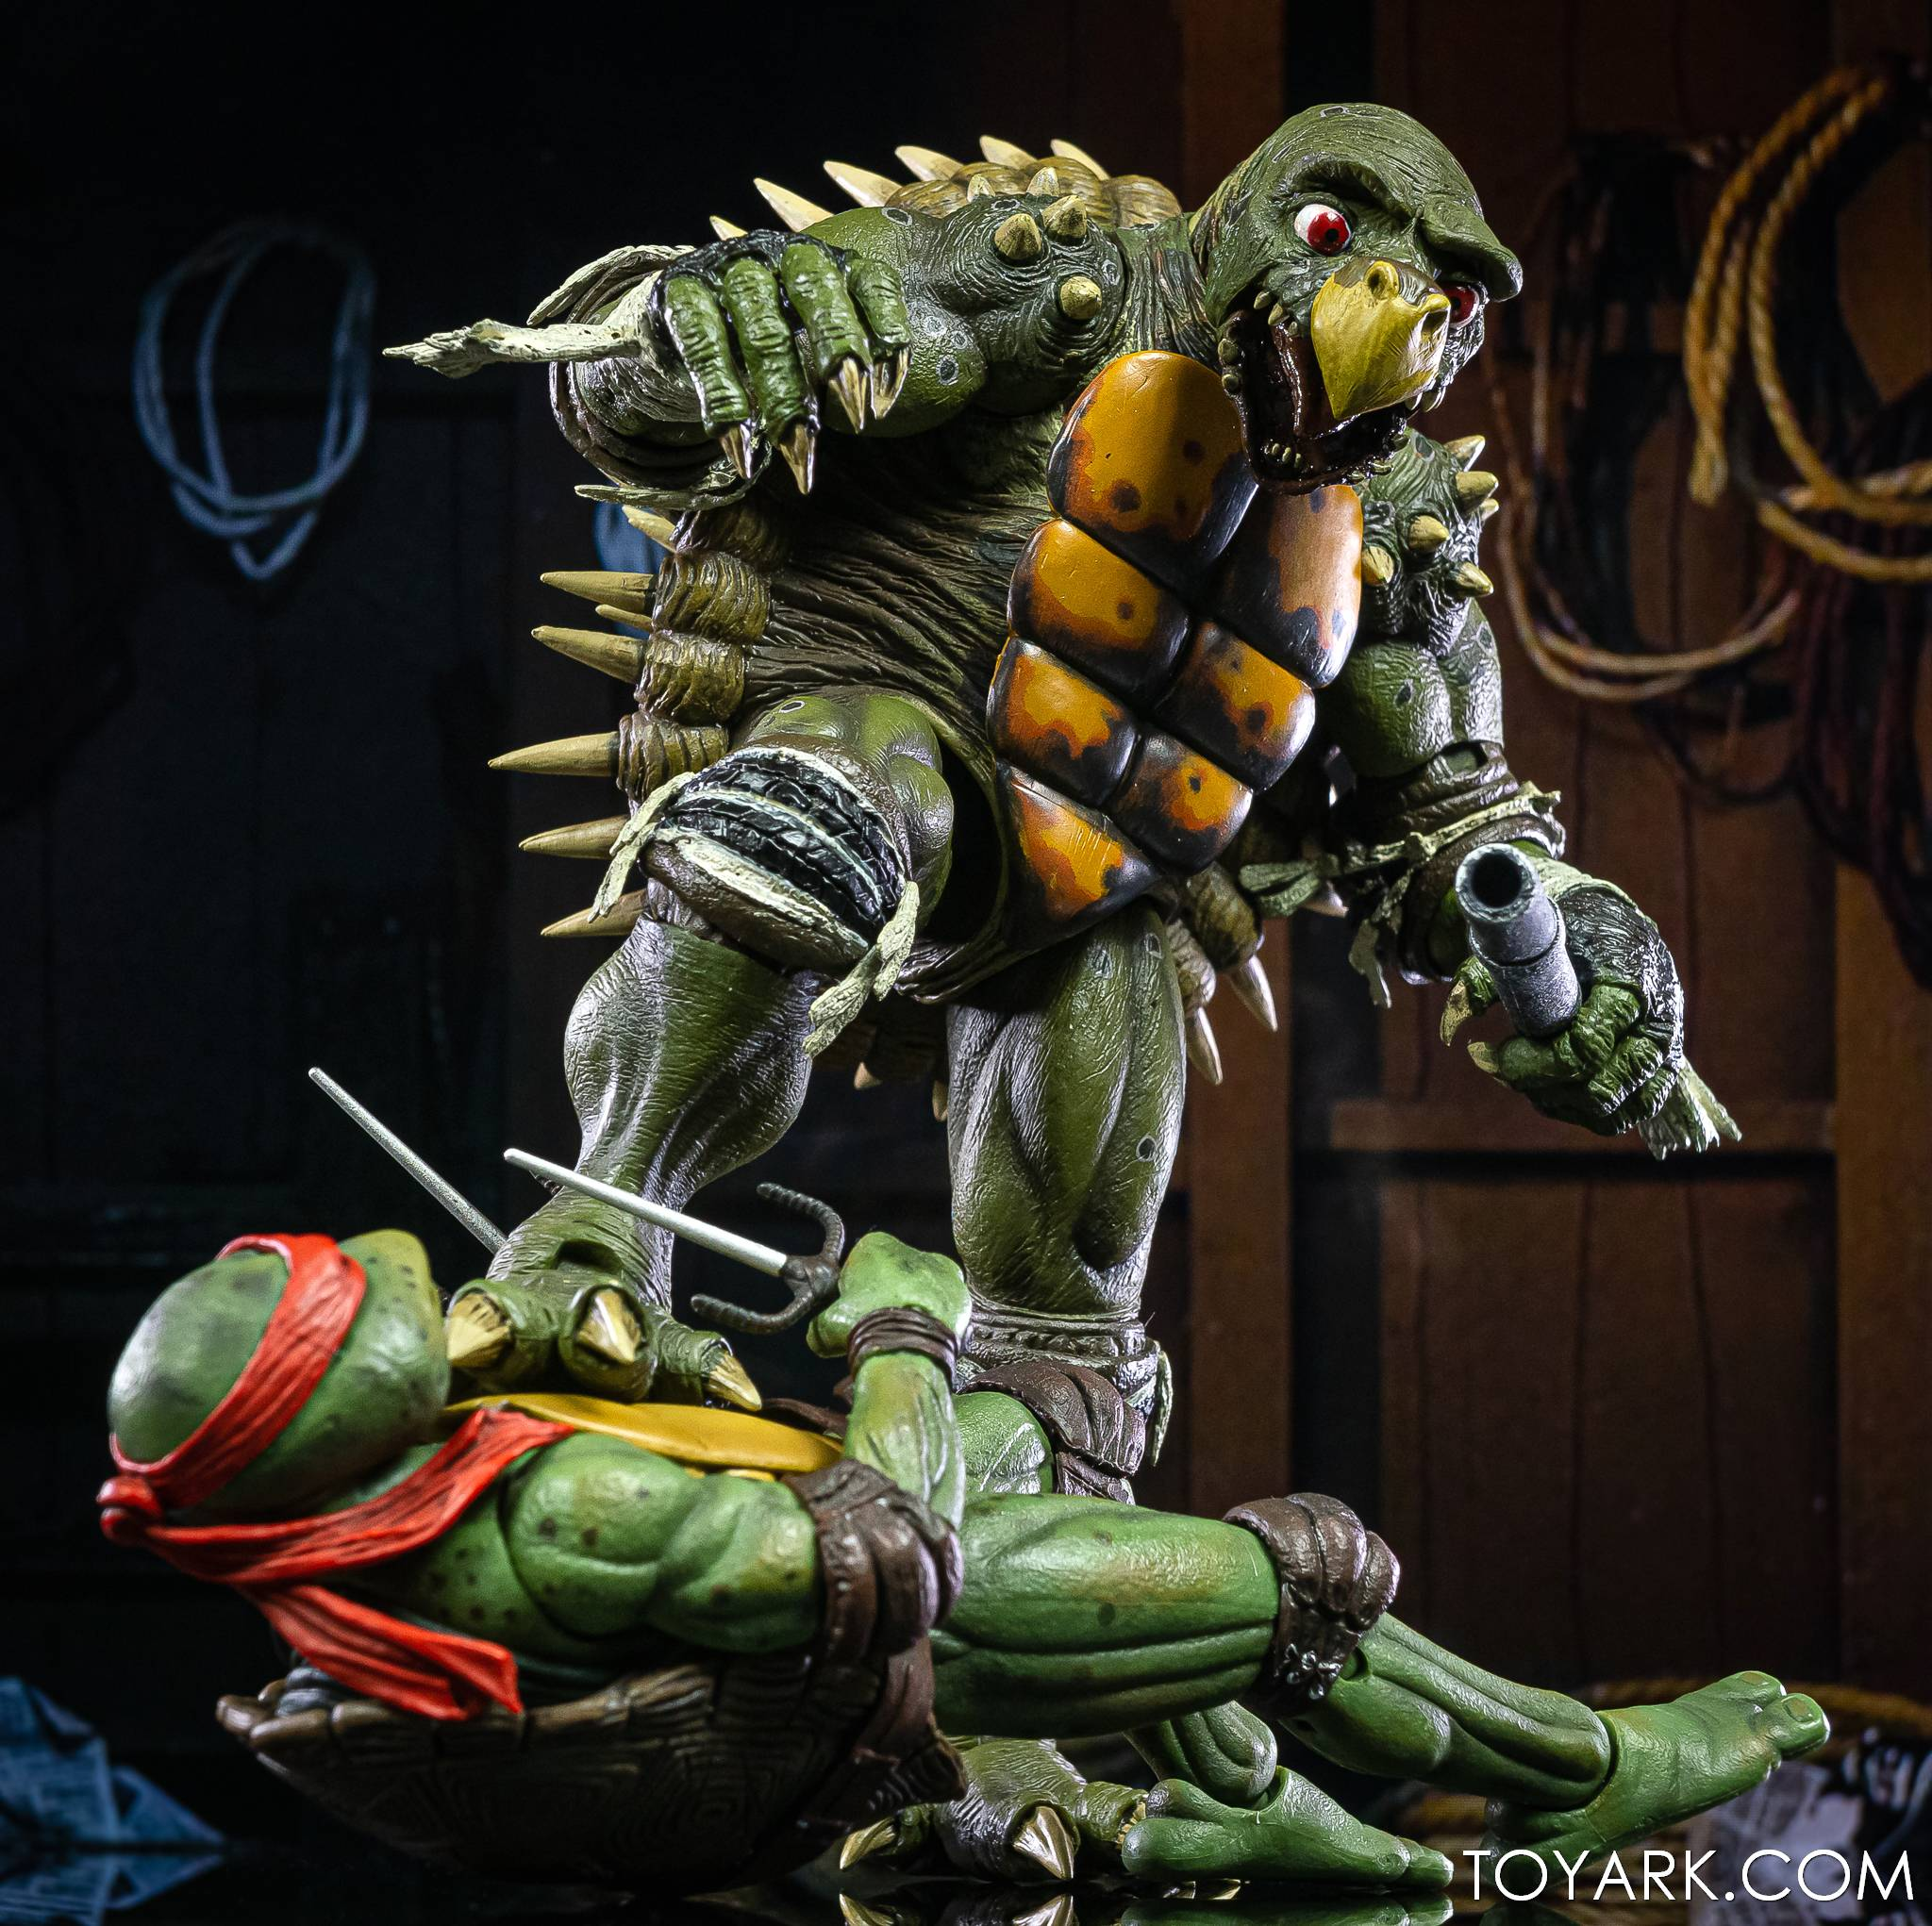 https://news.toyark.com/wp-content/uploads/sites/4/2021/03/NECA-Tokka-and-Rahzar-TMNT-II-041.jpg